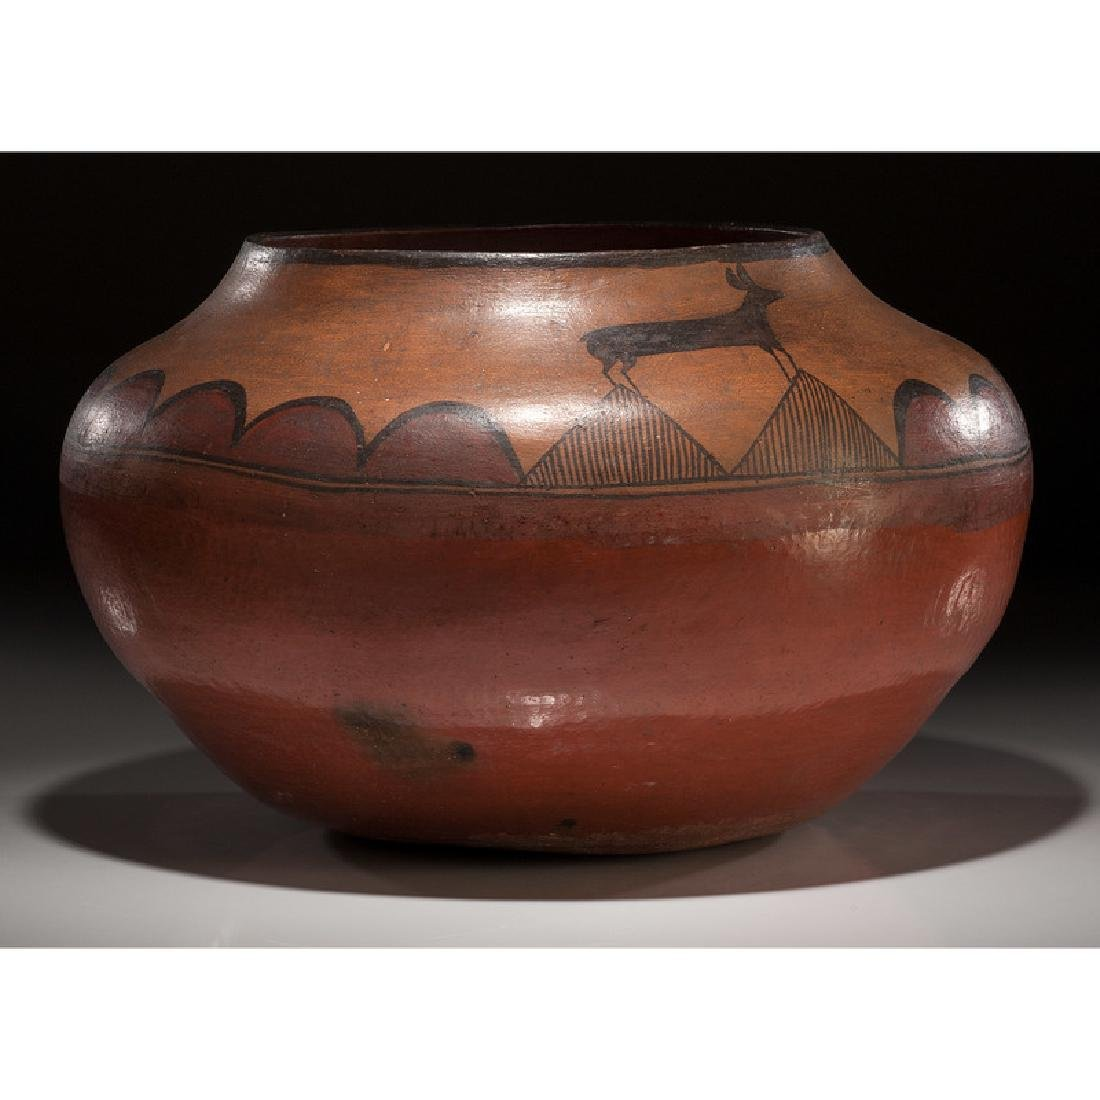 Zia Pictorial Pottery Olla, From the Collection of - 2